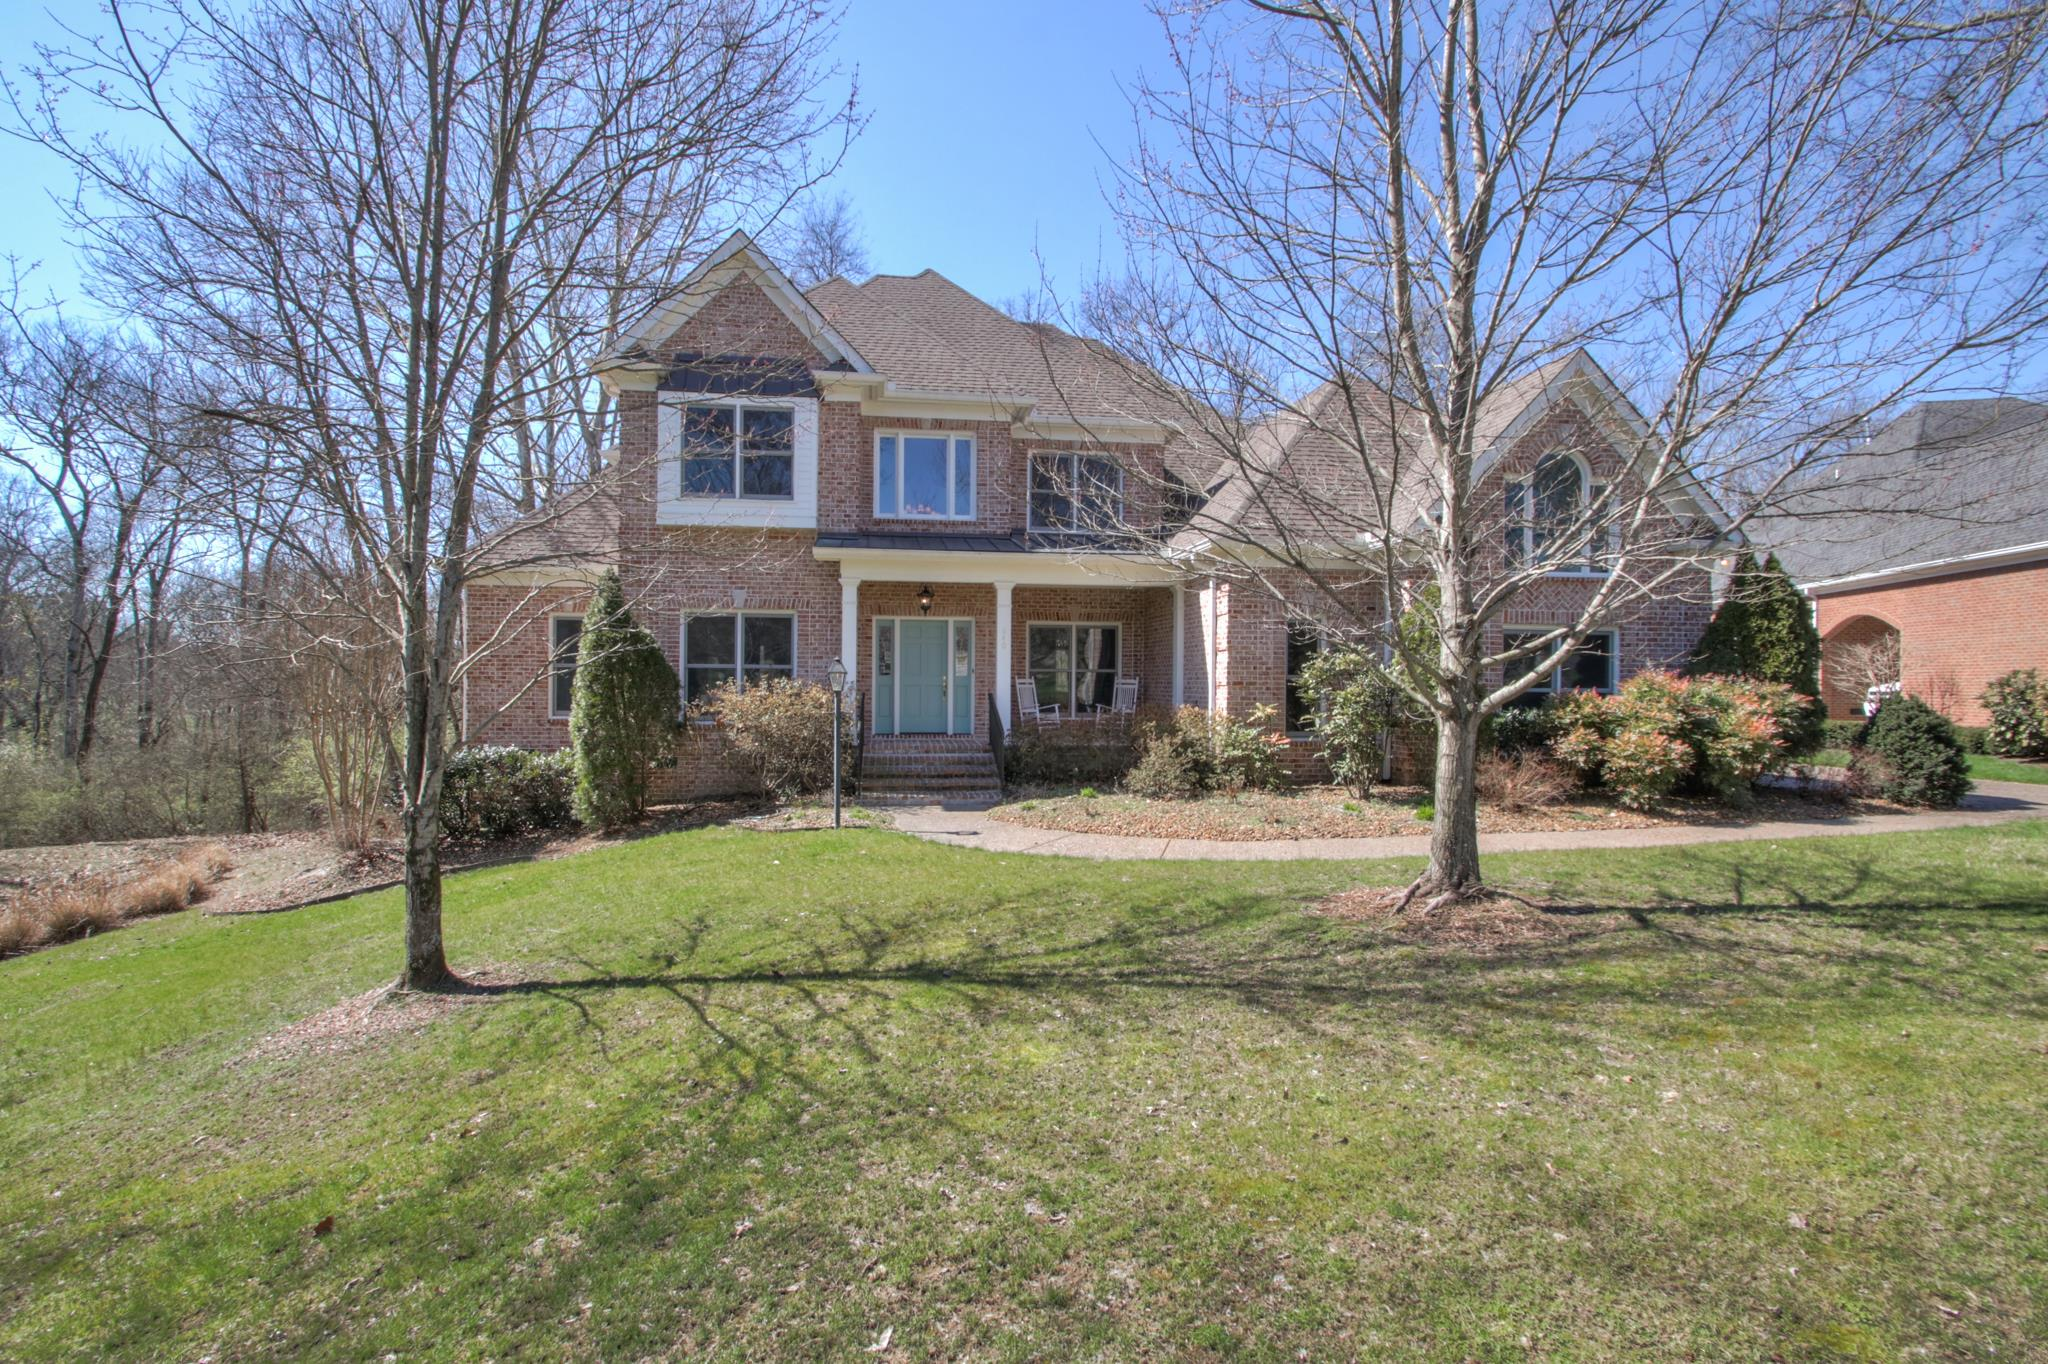 640 Burghley Ln, Franklin, TN 37064 - Franklin, TN real estate listing